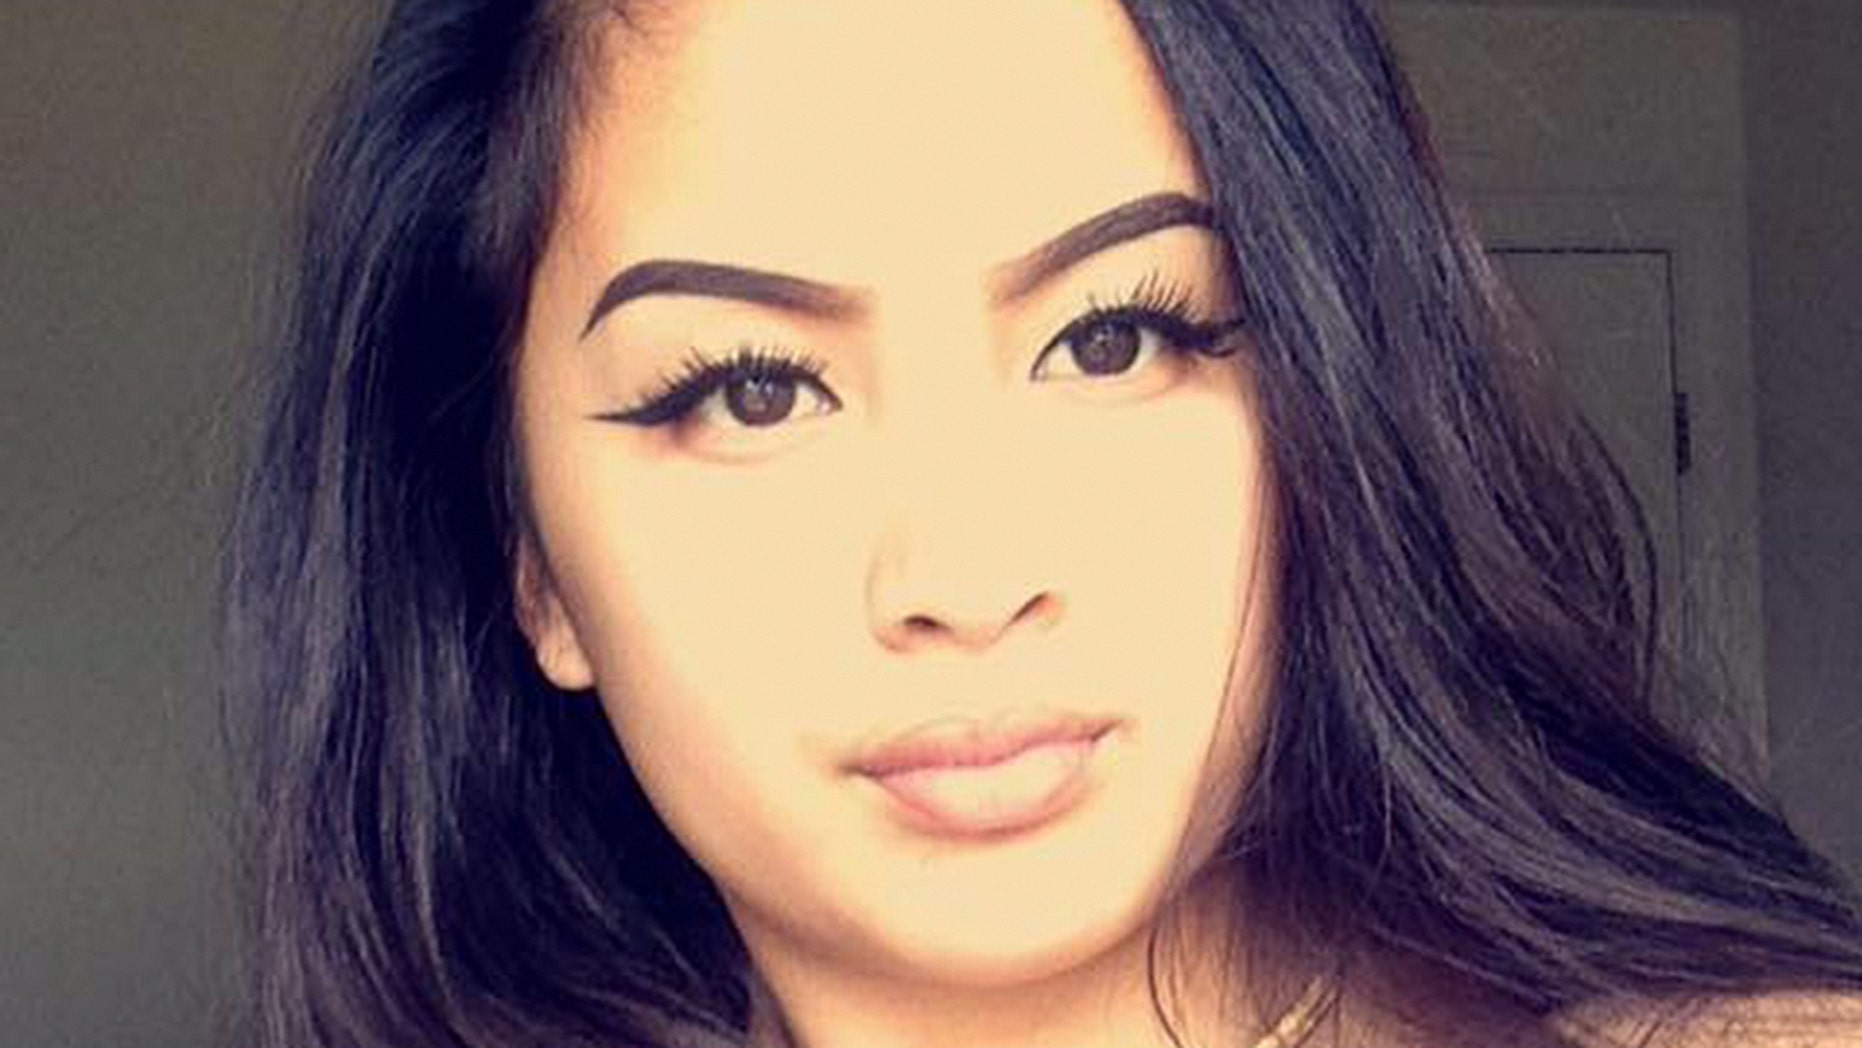 Raelyn Domingo was arrested in connection with a shooting and robbery.